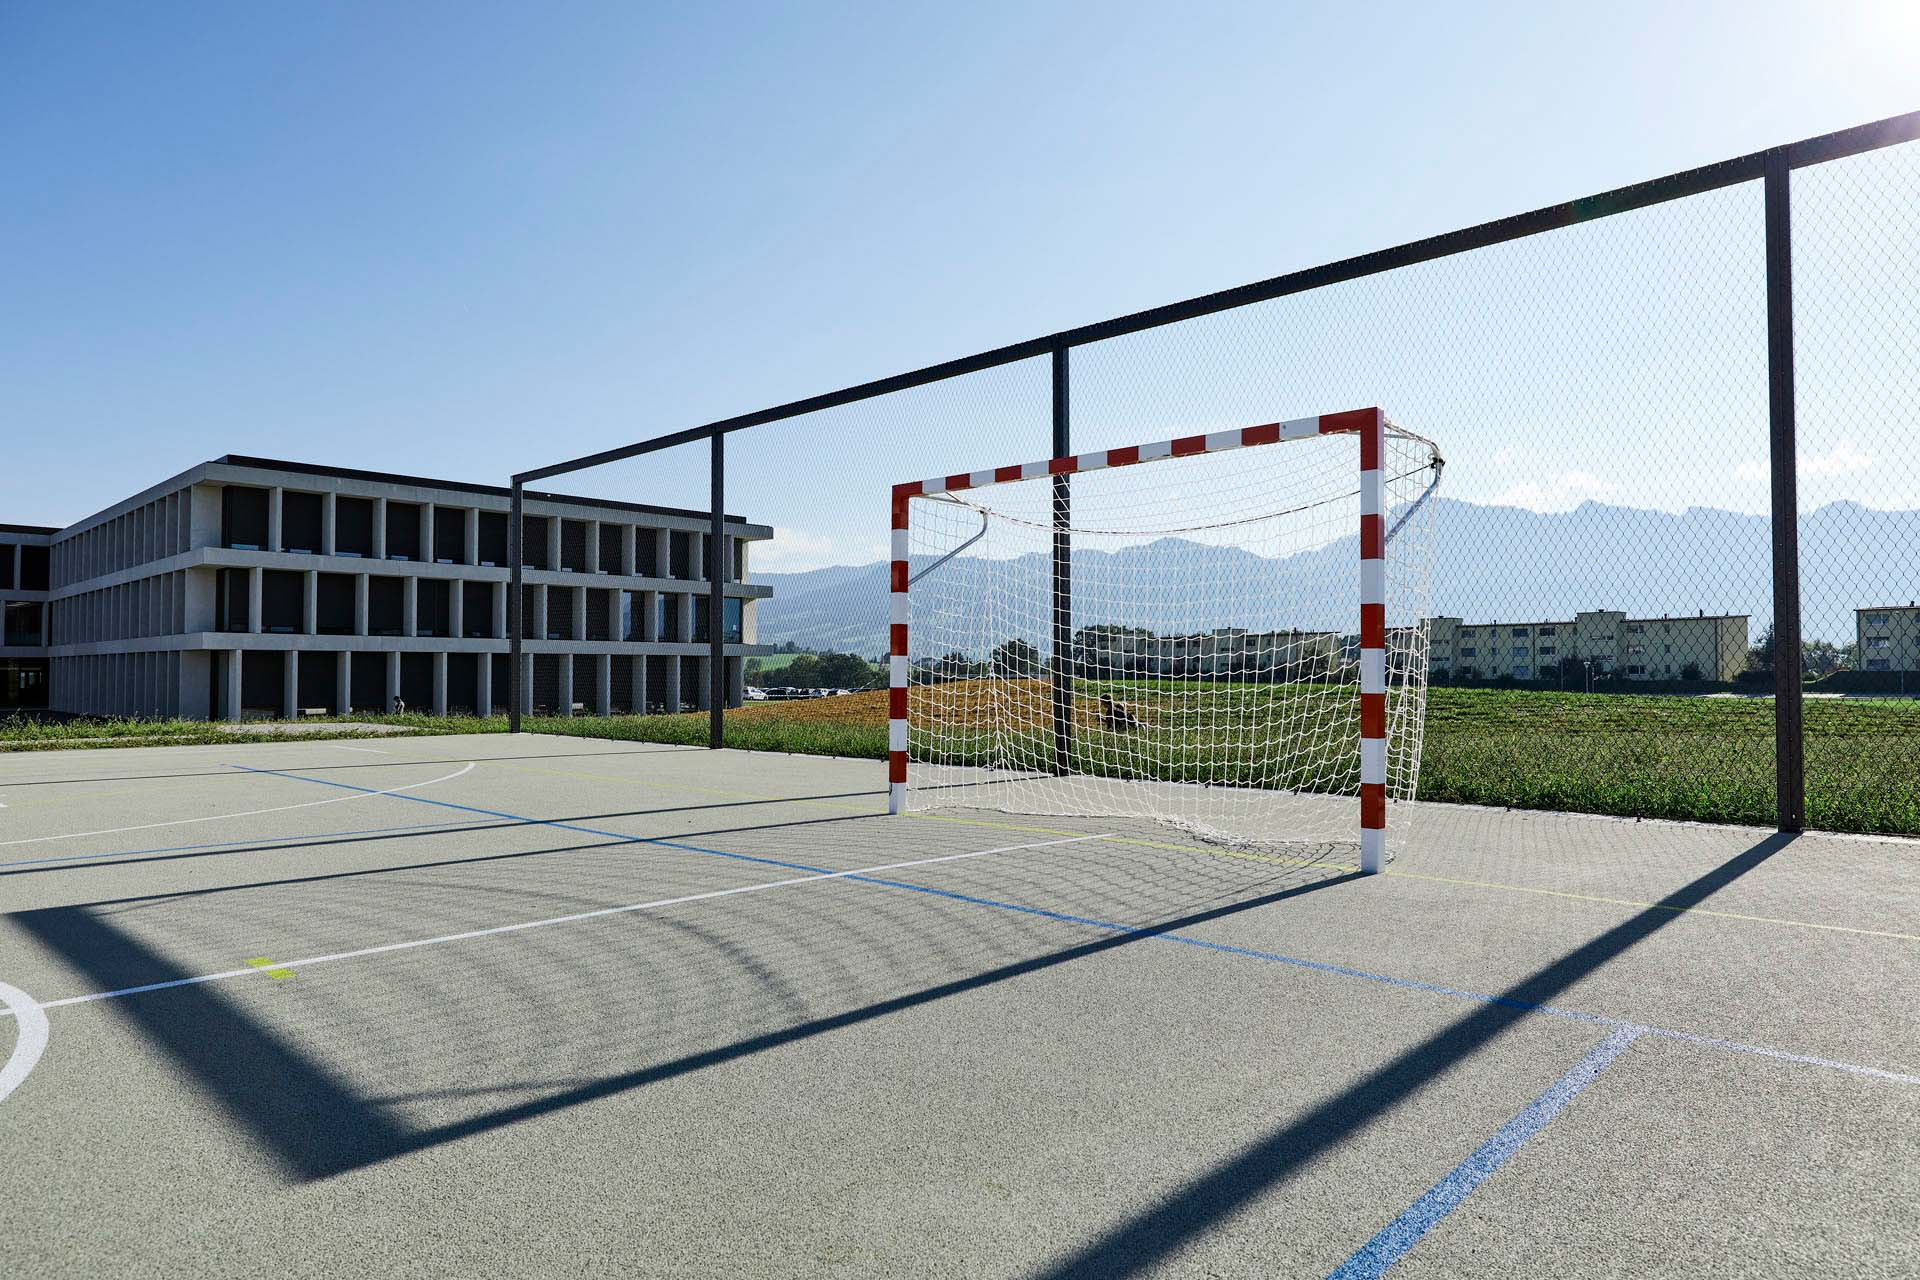 Sports court and goal in front of ball fence